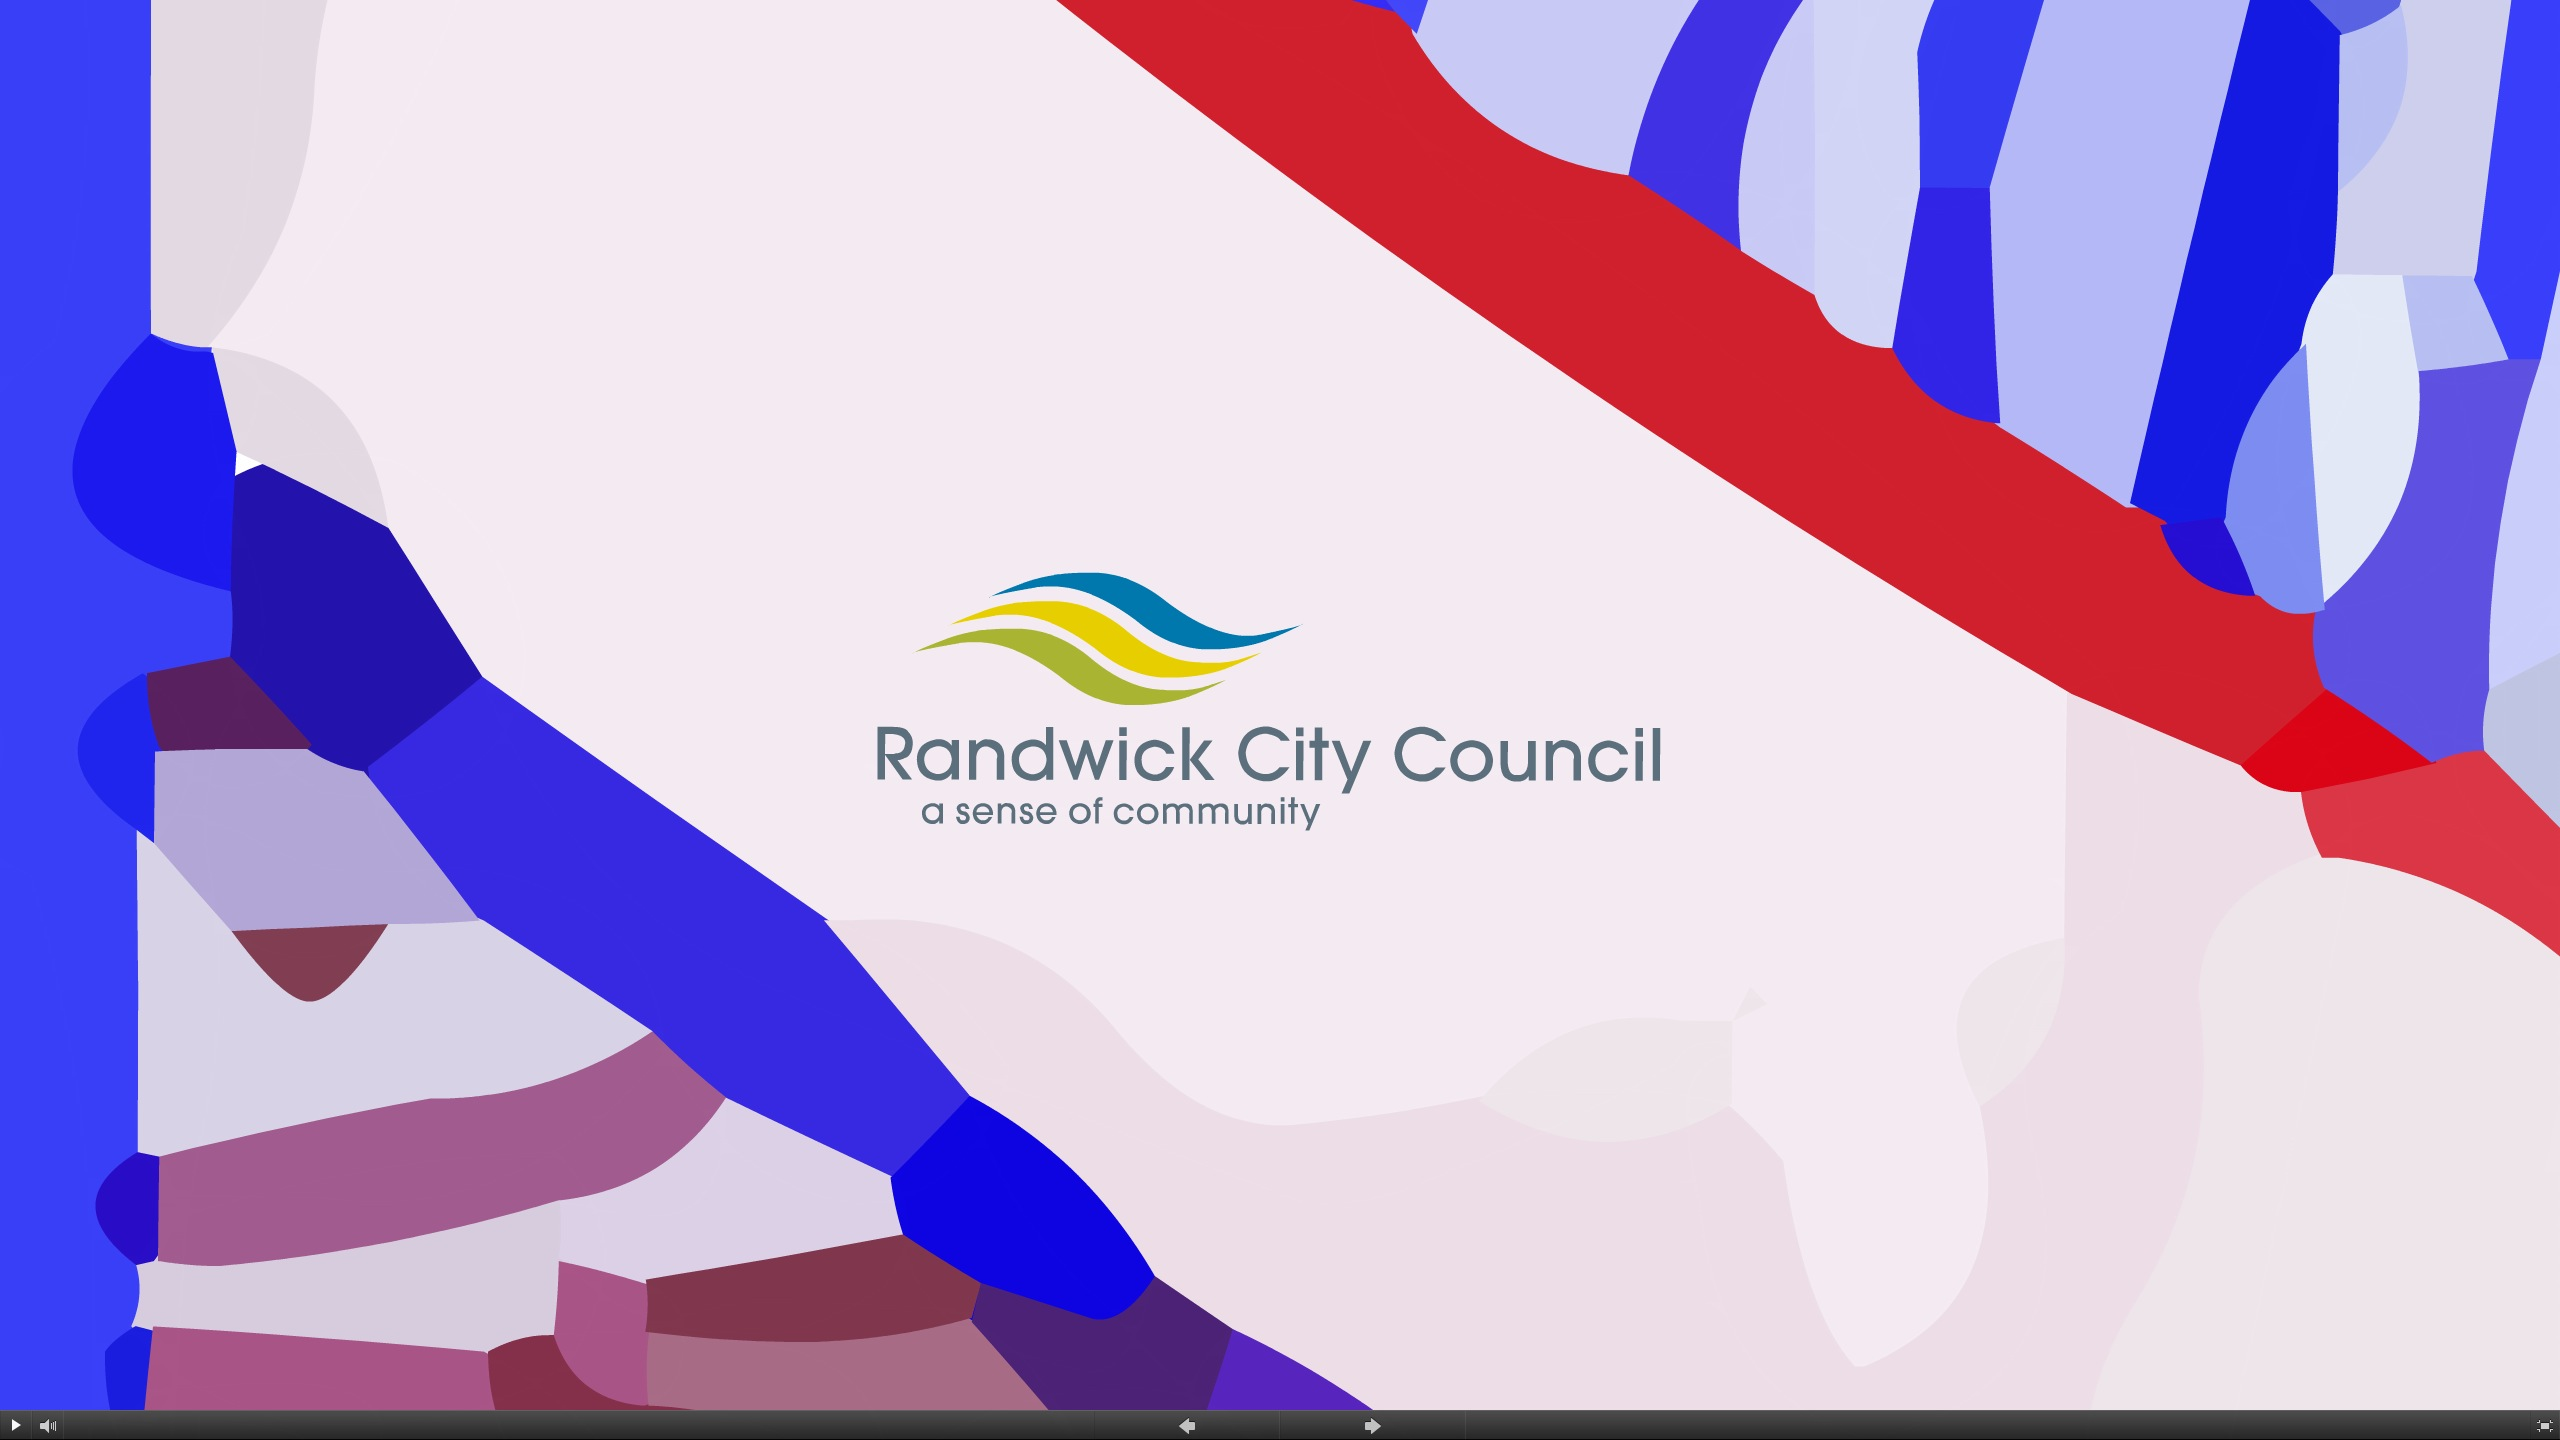 p3 prezi designer Shane Nagle Randwick Council sustainability environmental design awards